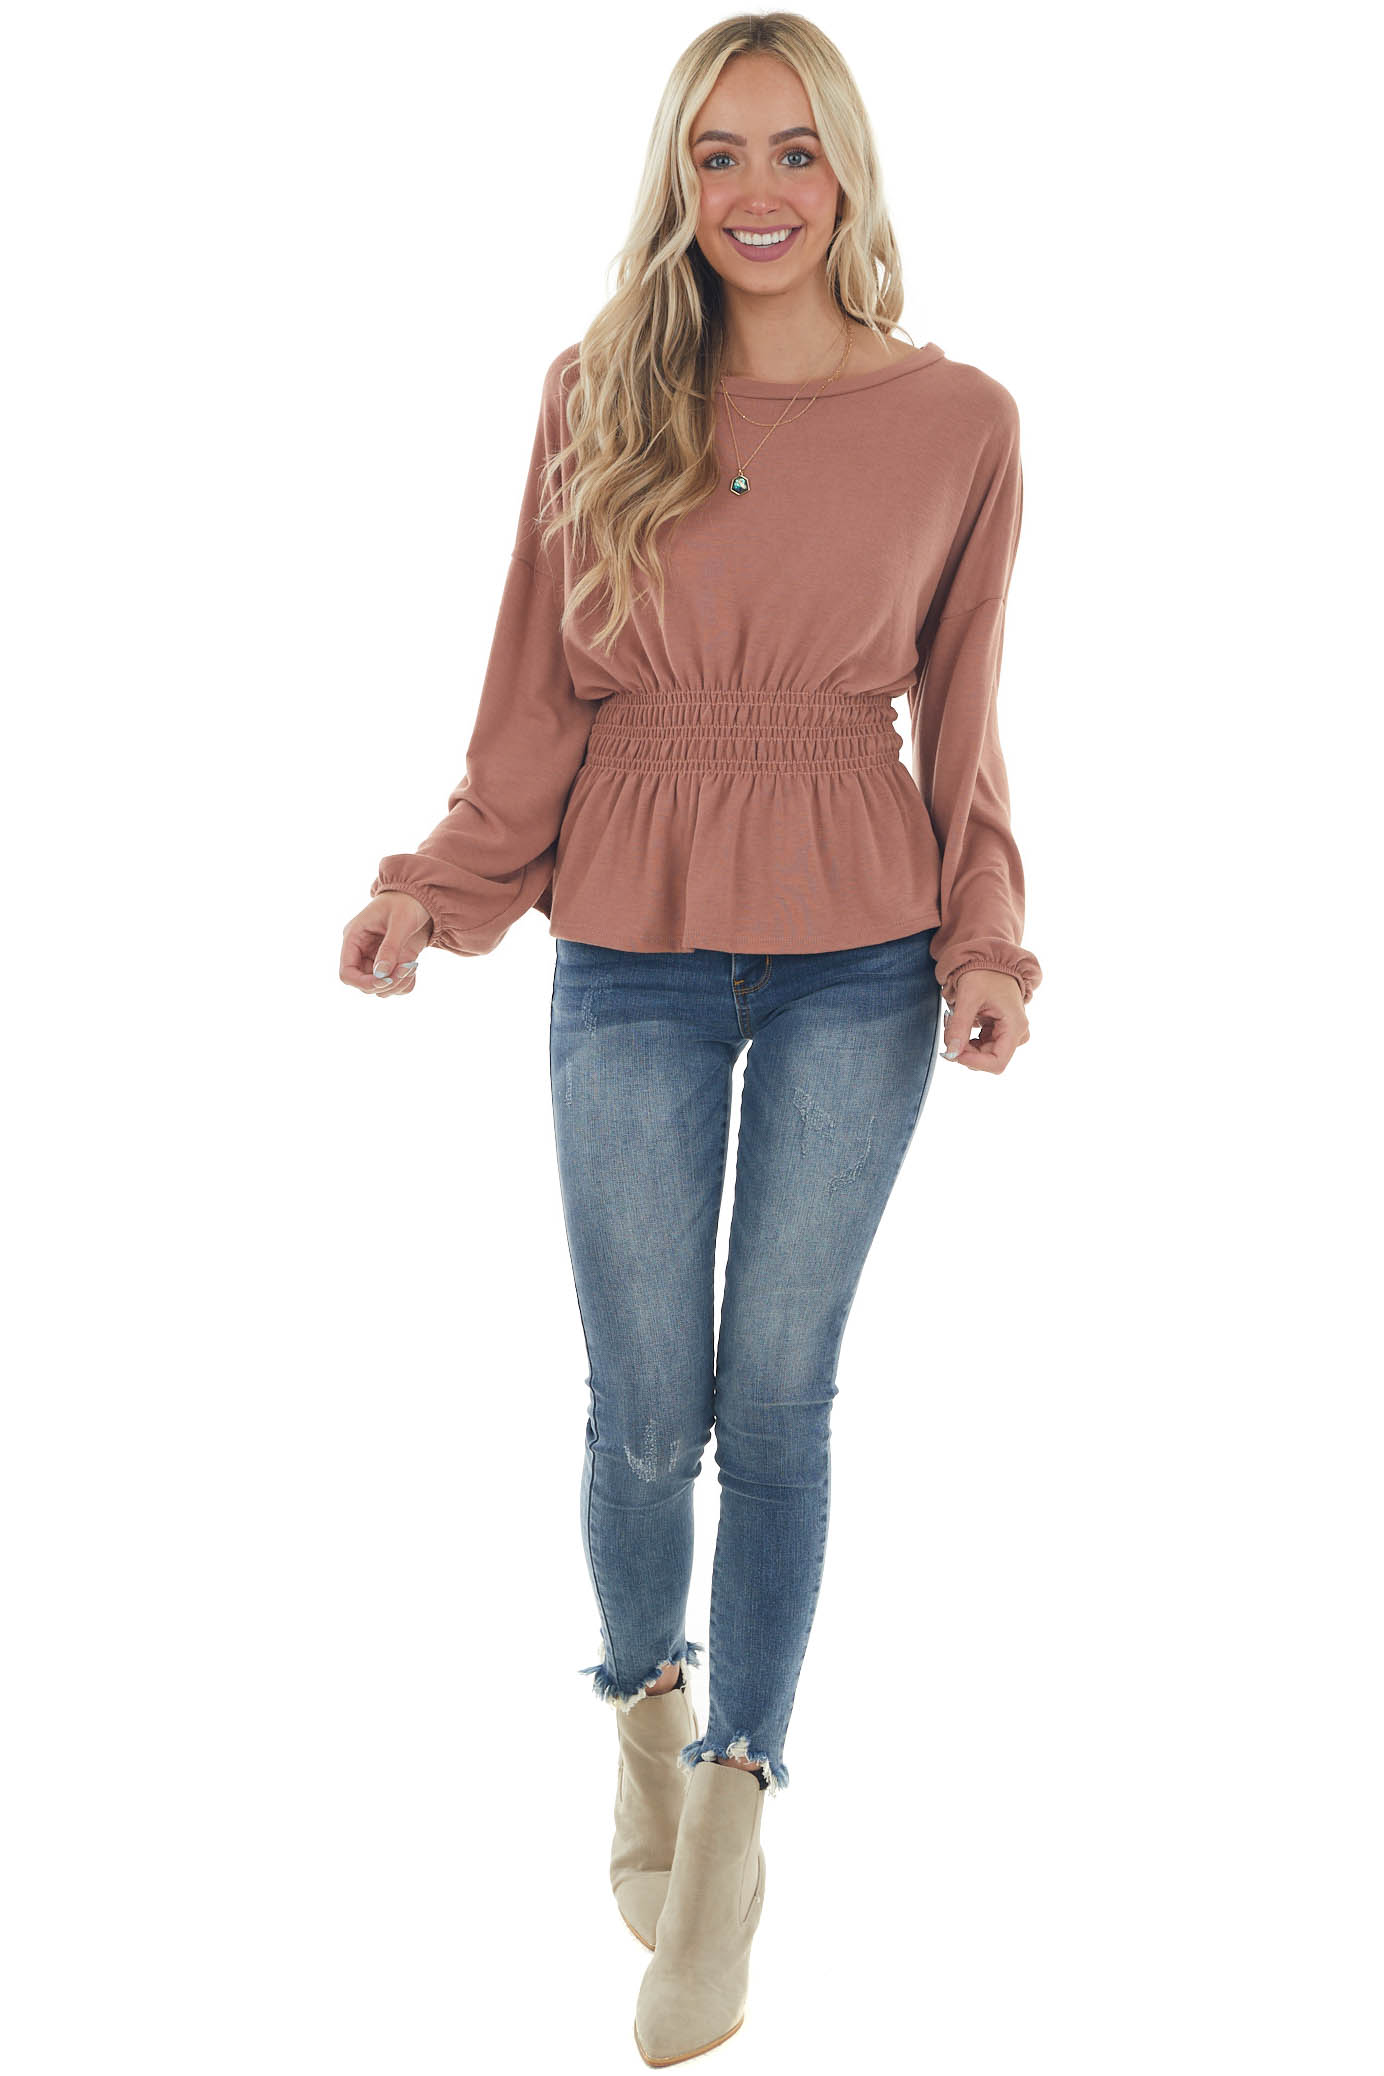 Faded Ginger Peplum Knit Top with Long Sleeves